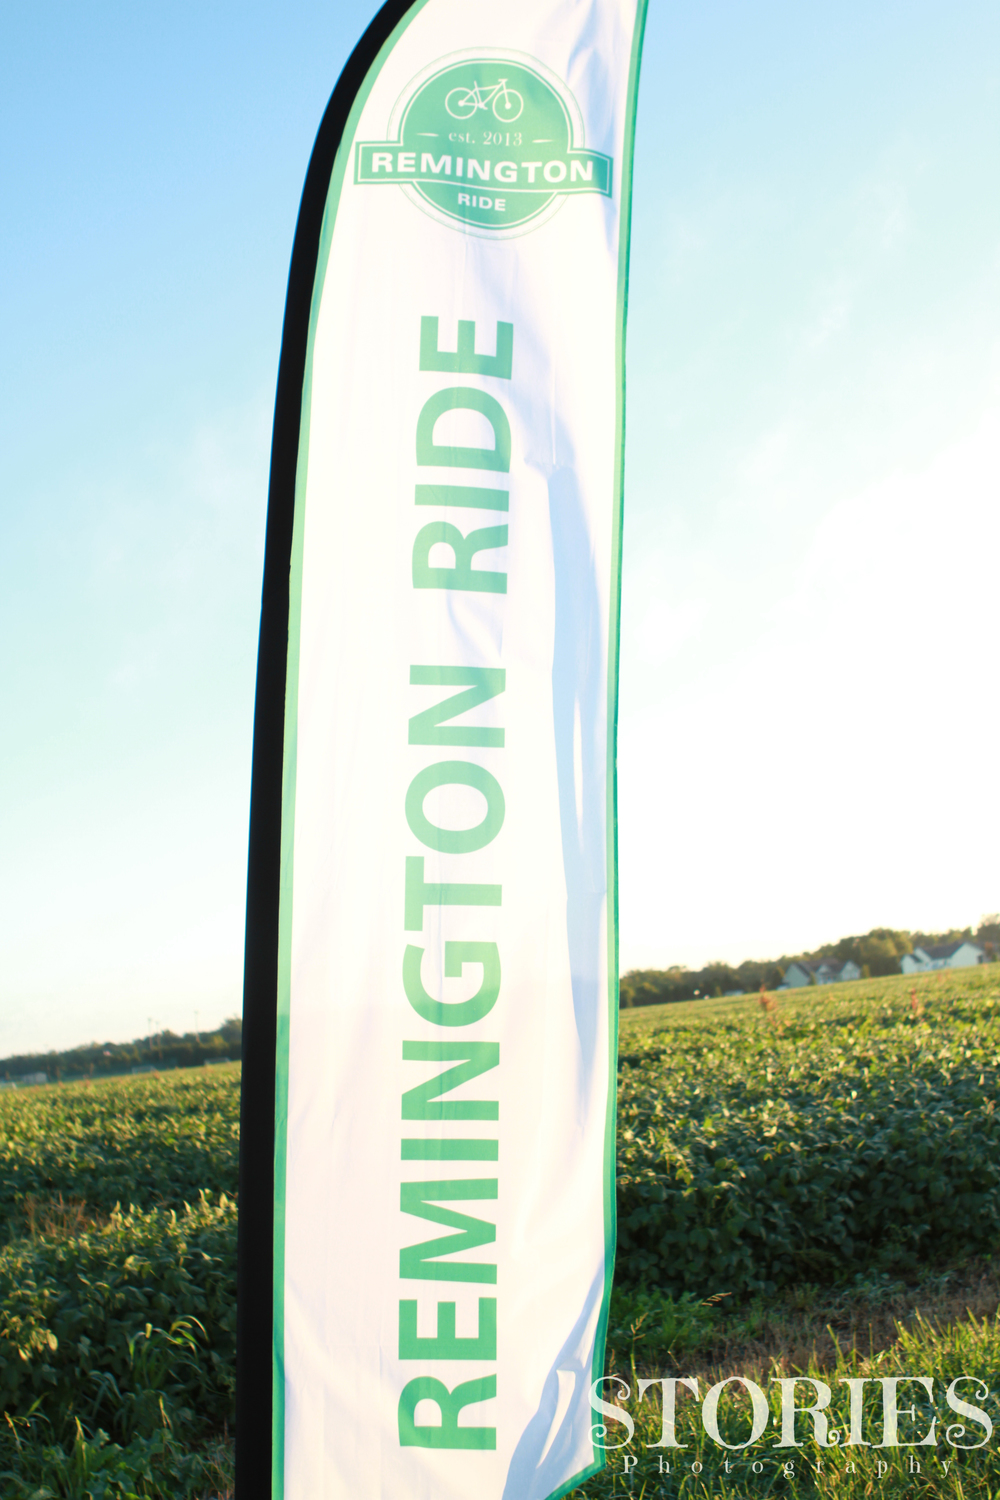 Remington Ride entrance